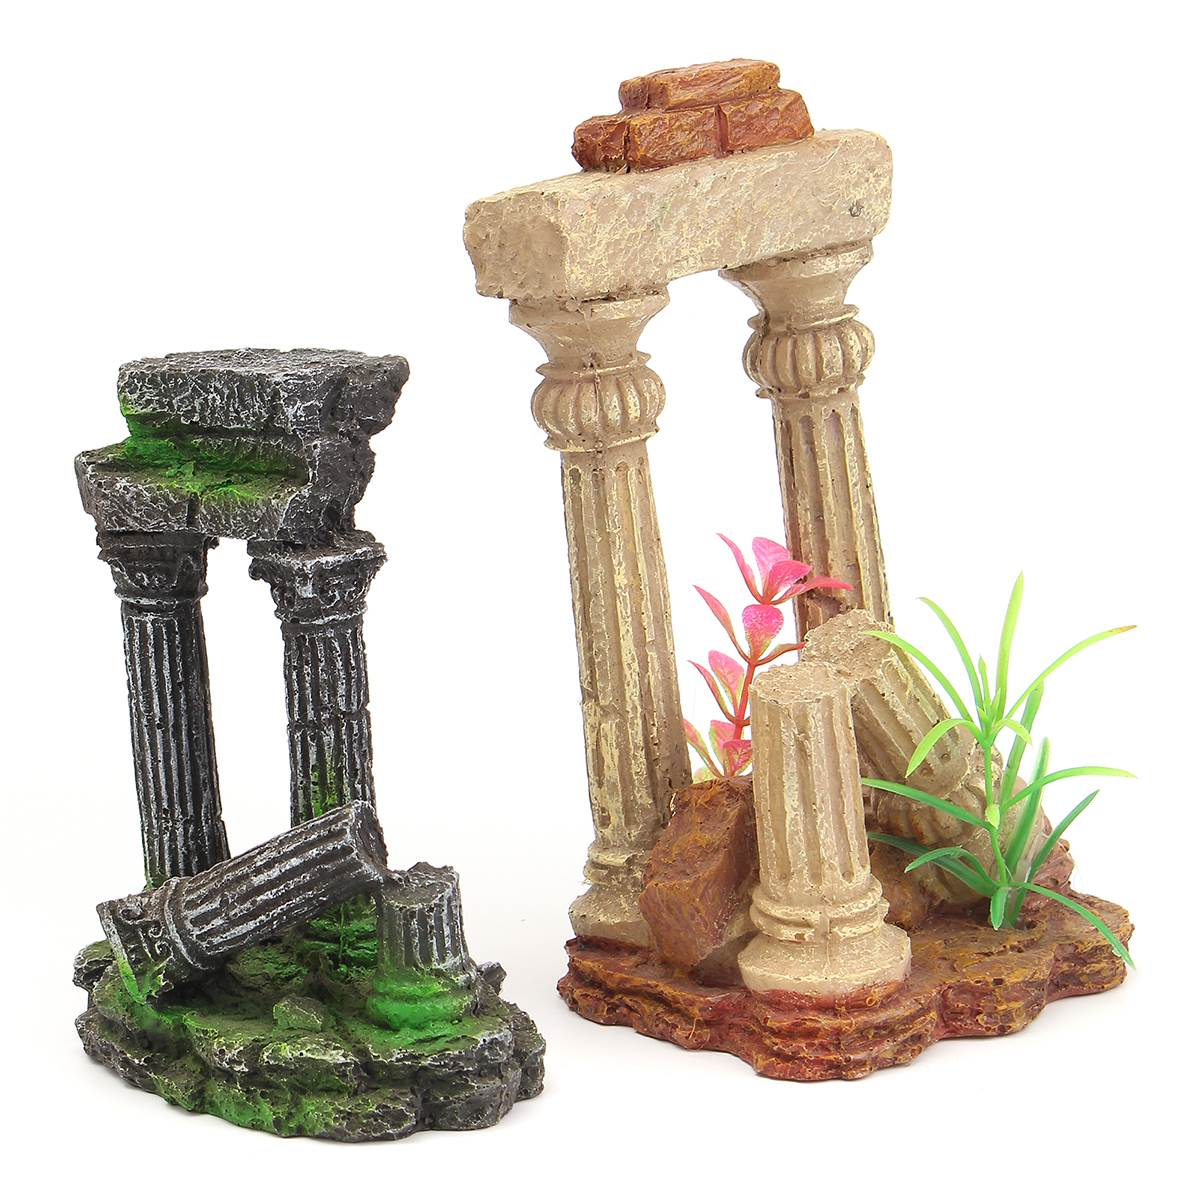 Decorative garden ornaments - Ancient Roman Ruins Garden Ornaments Decorations Castle Artificial Roman Column Ornament Rockery Resin Hiding Landscaping